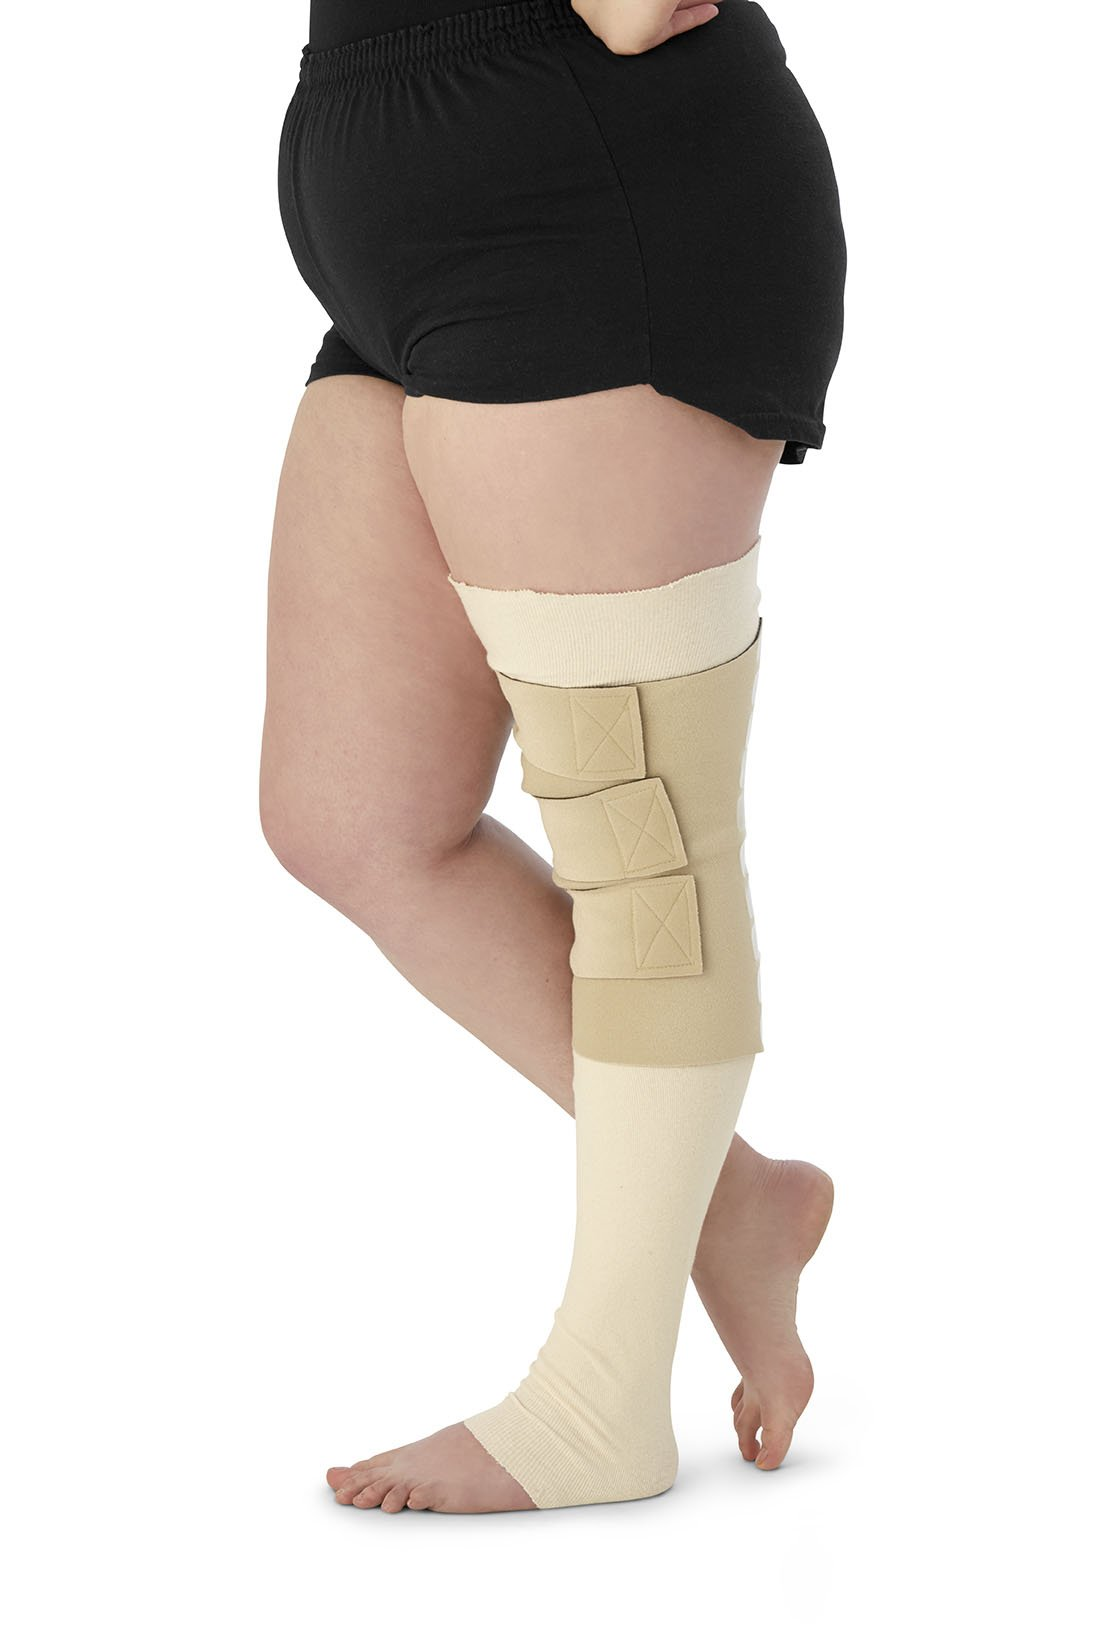 circaid Reduction Kit Knee Custom Tension Compression Therapeutic System